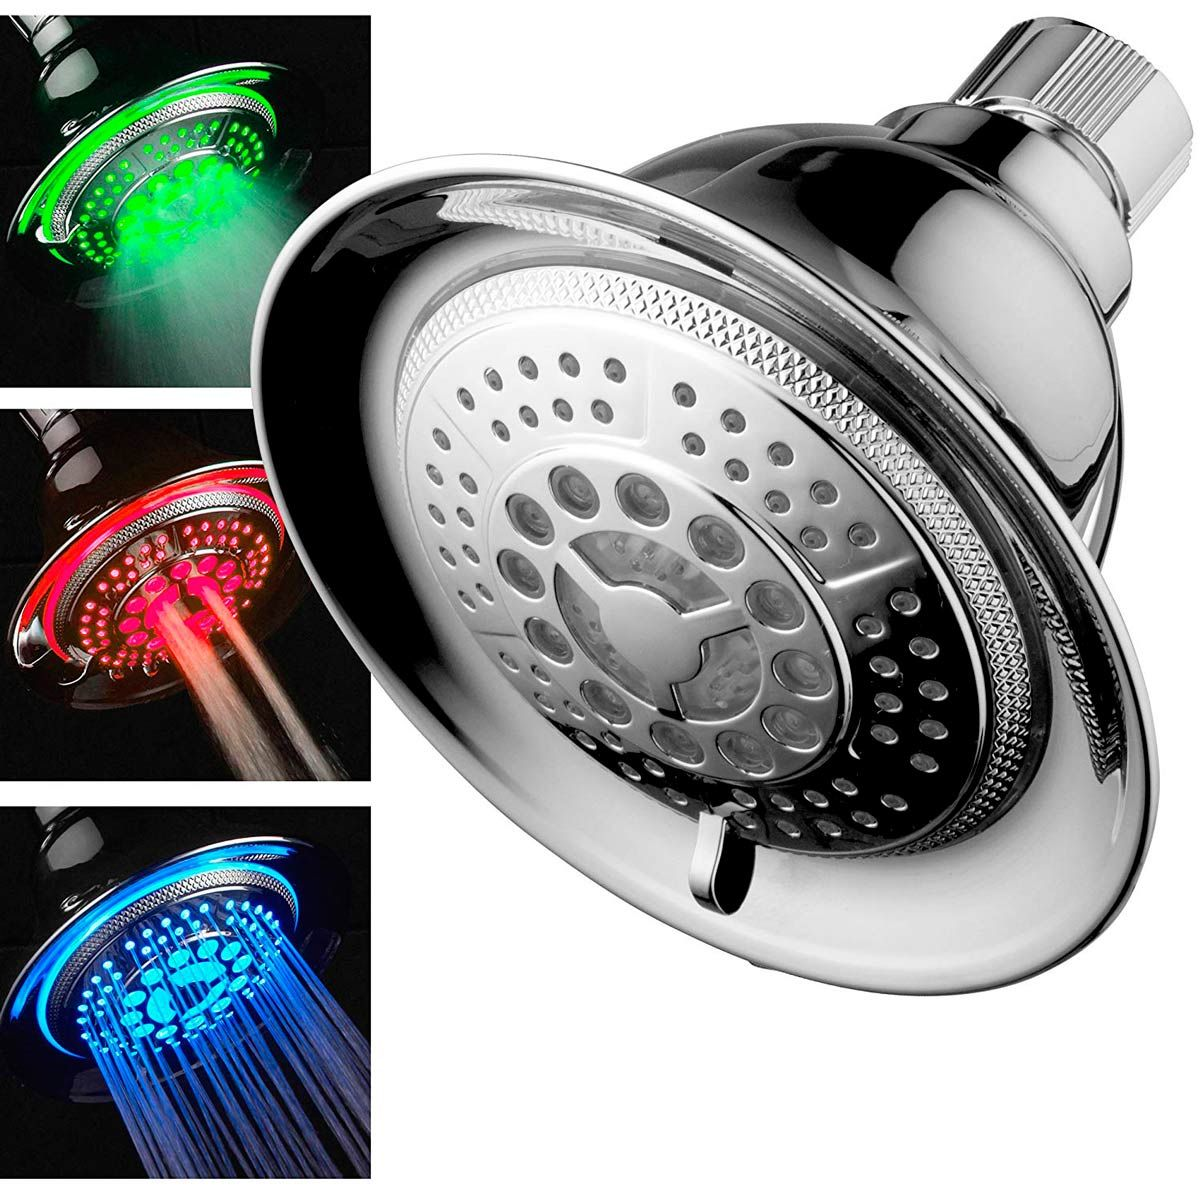 10 Diy Projects Your Landlord Might Let You Do Led Shower Head